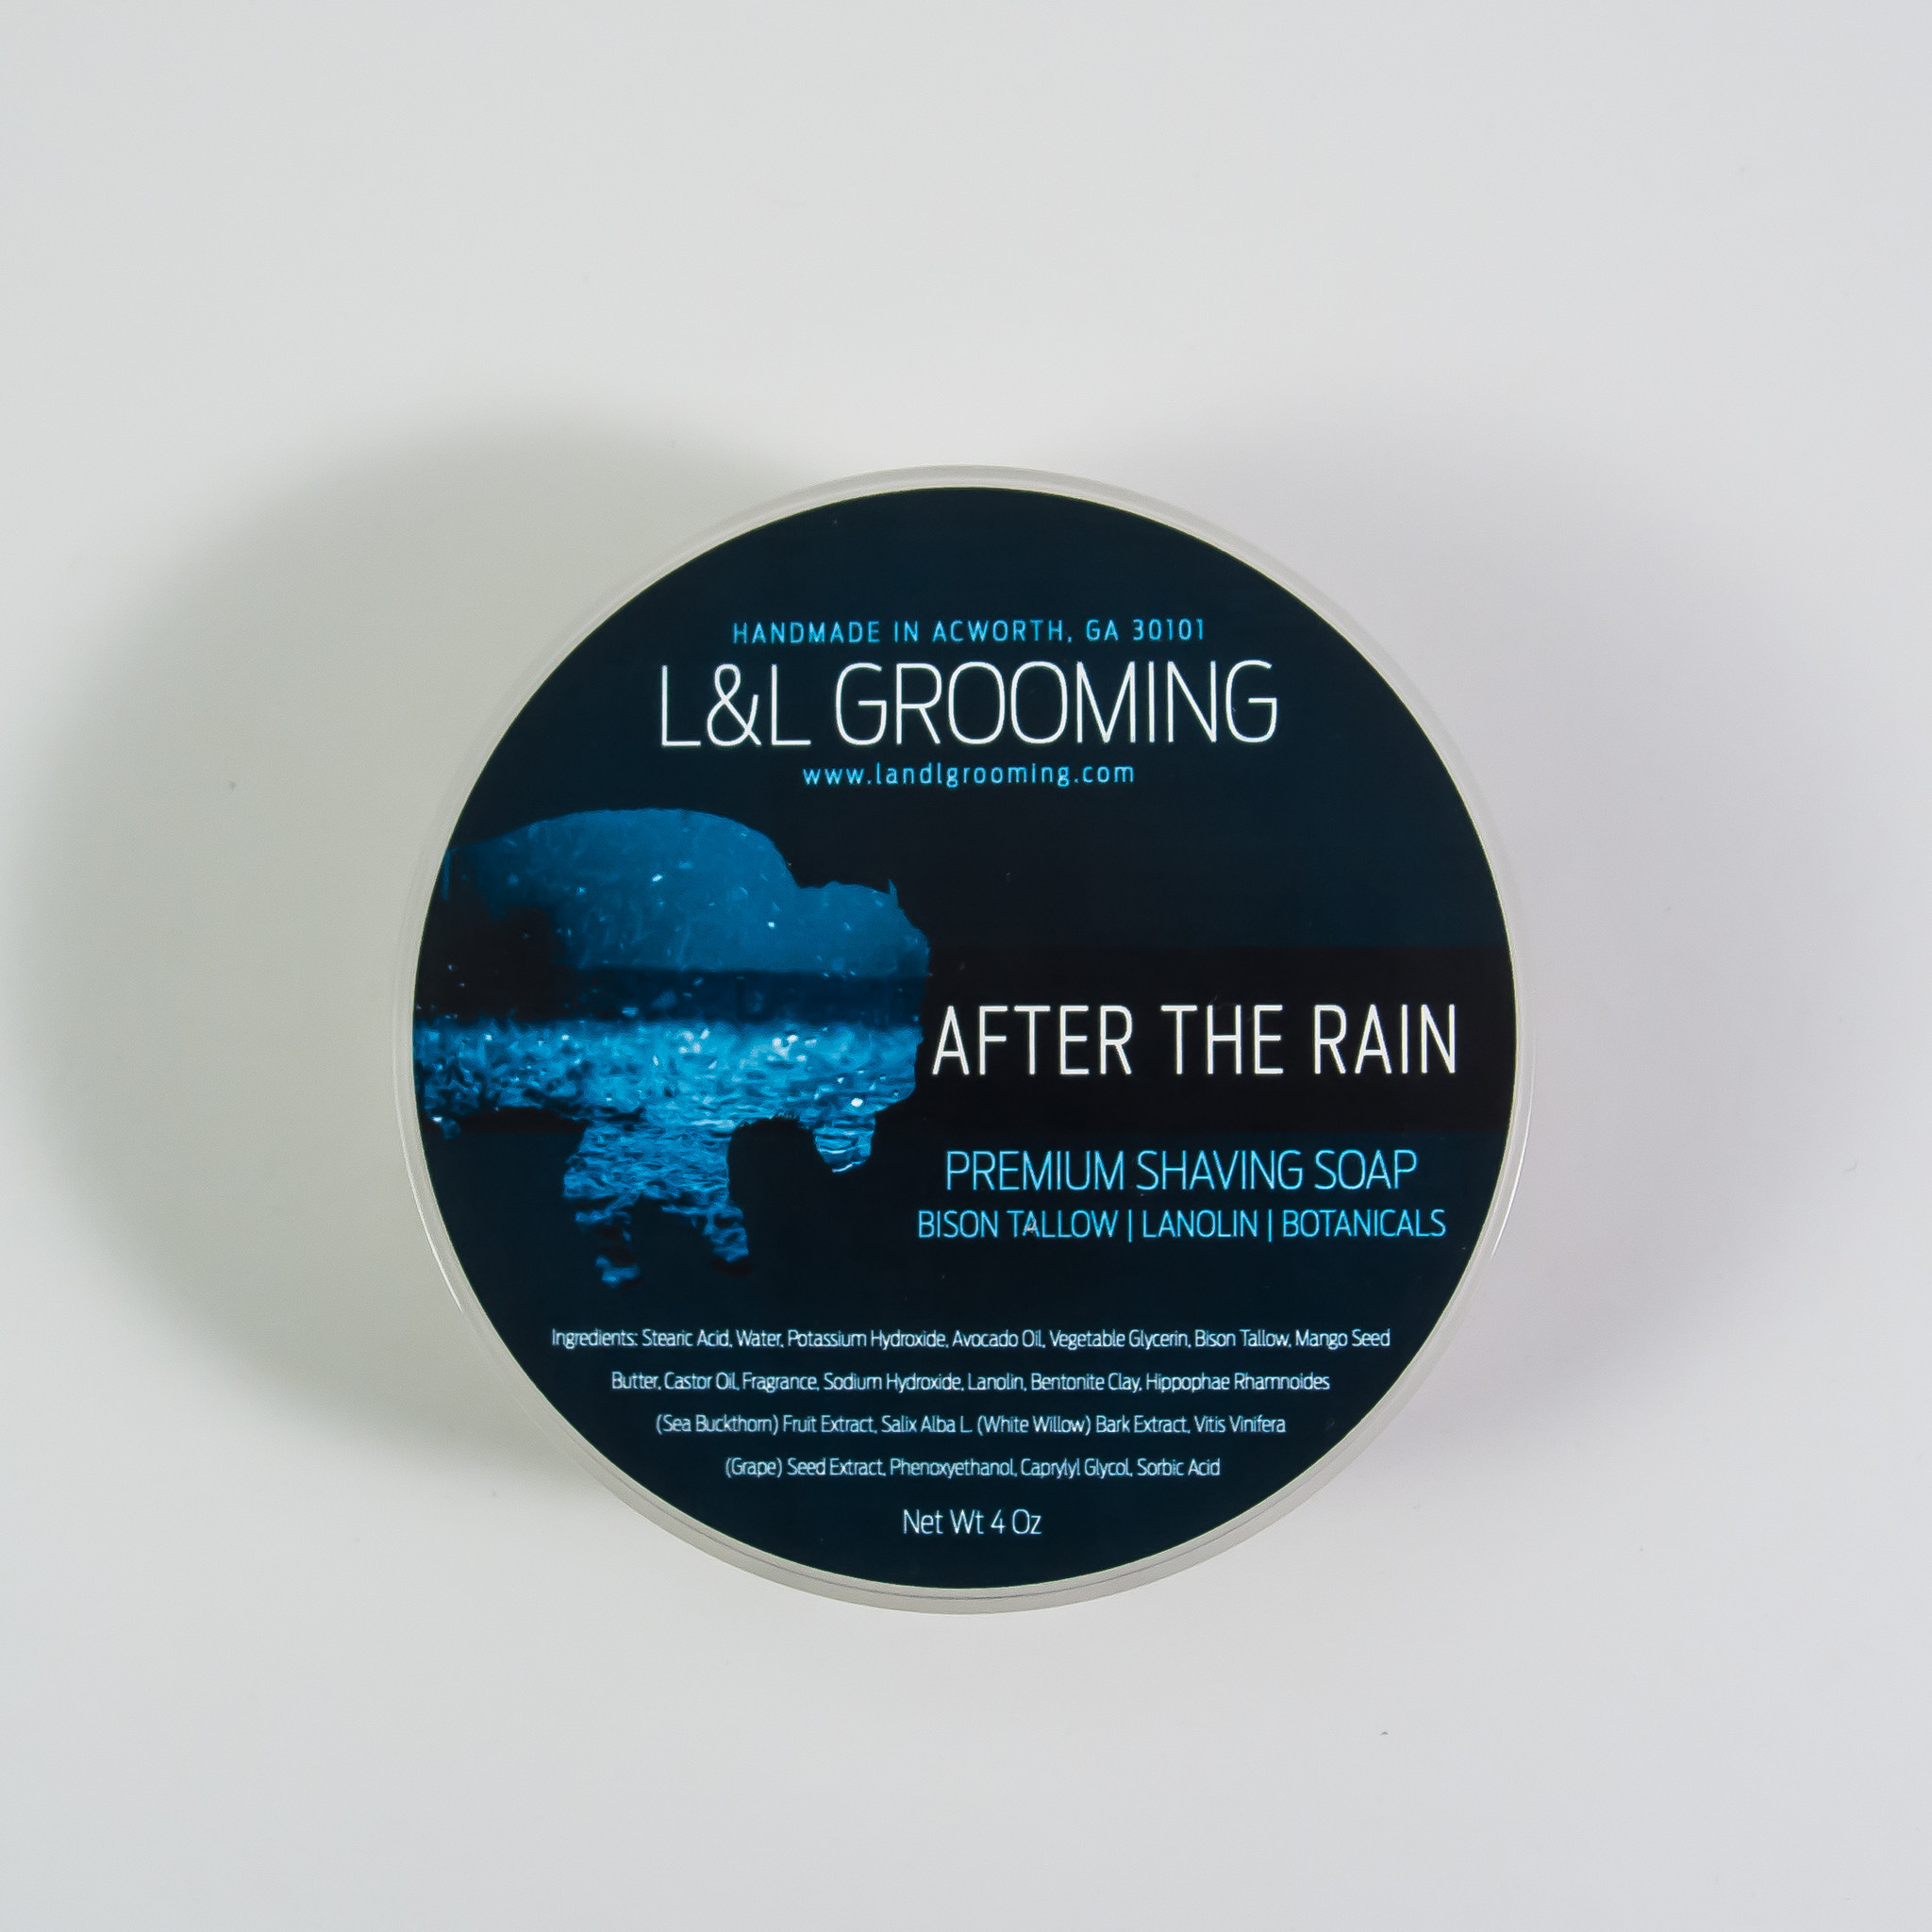 Declaration Grooming - Declaration Grooming - After the Rain - Soap image